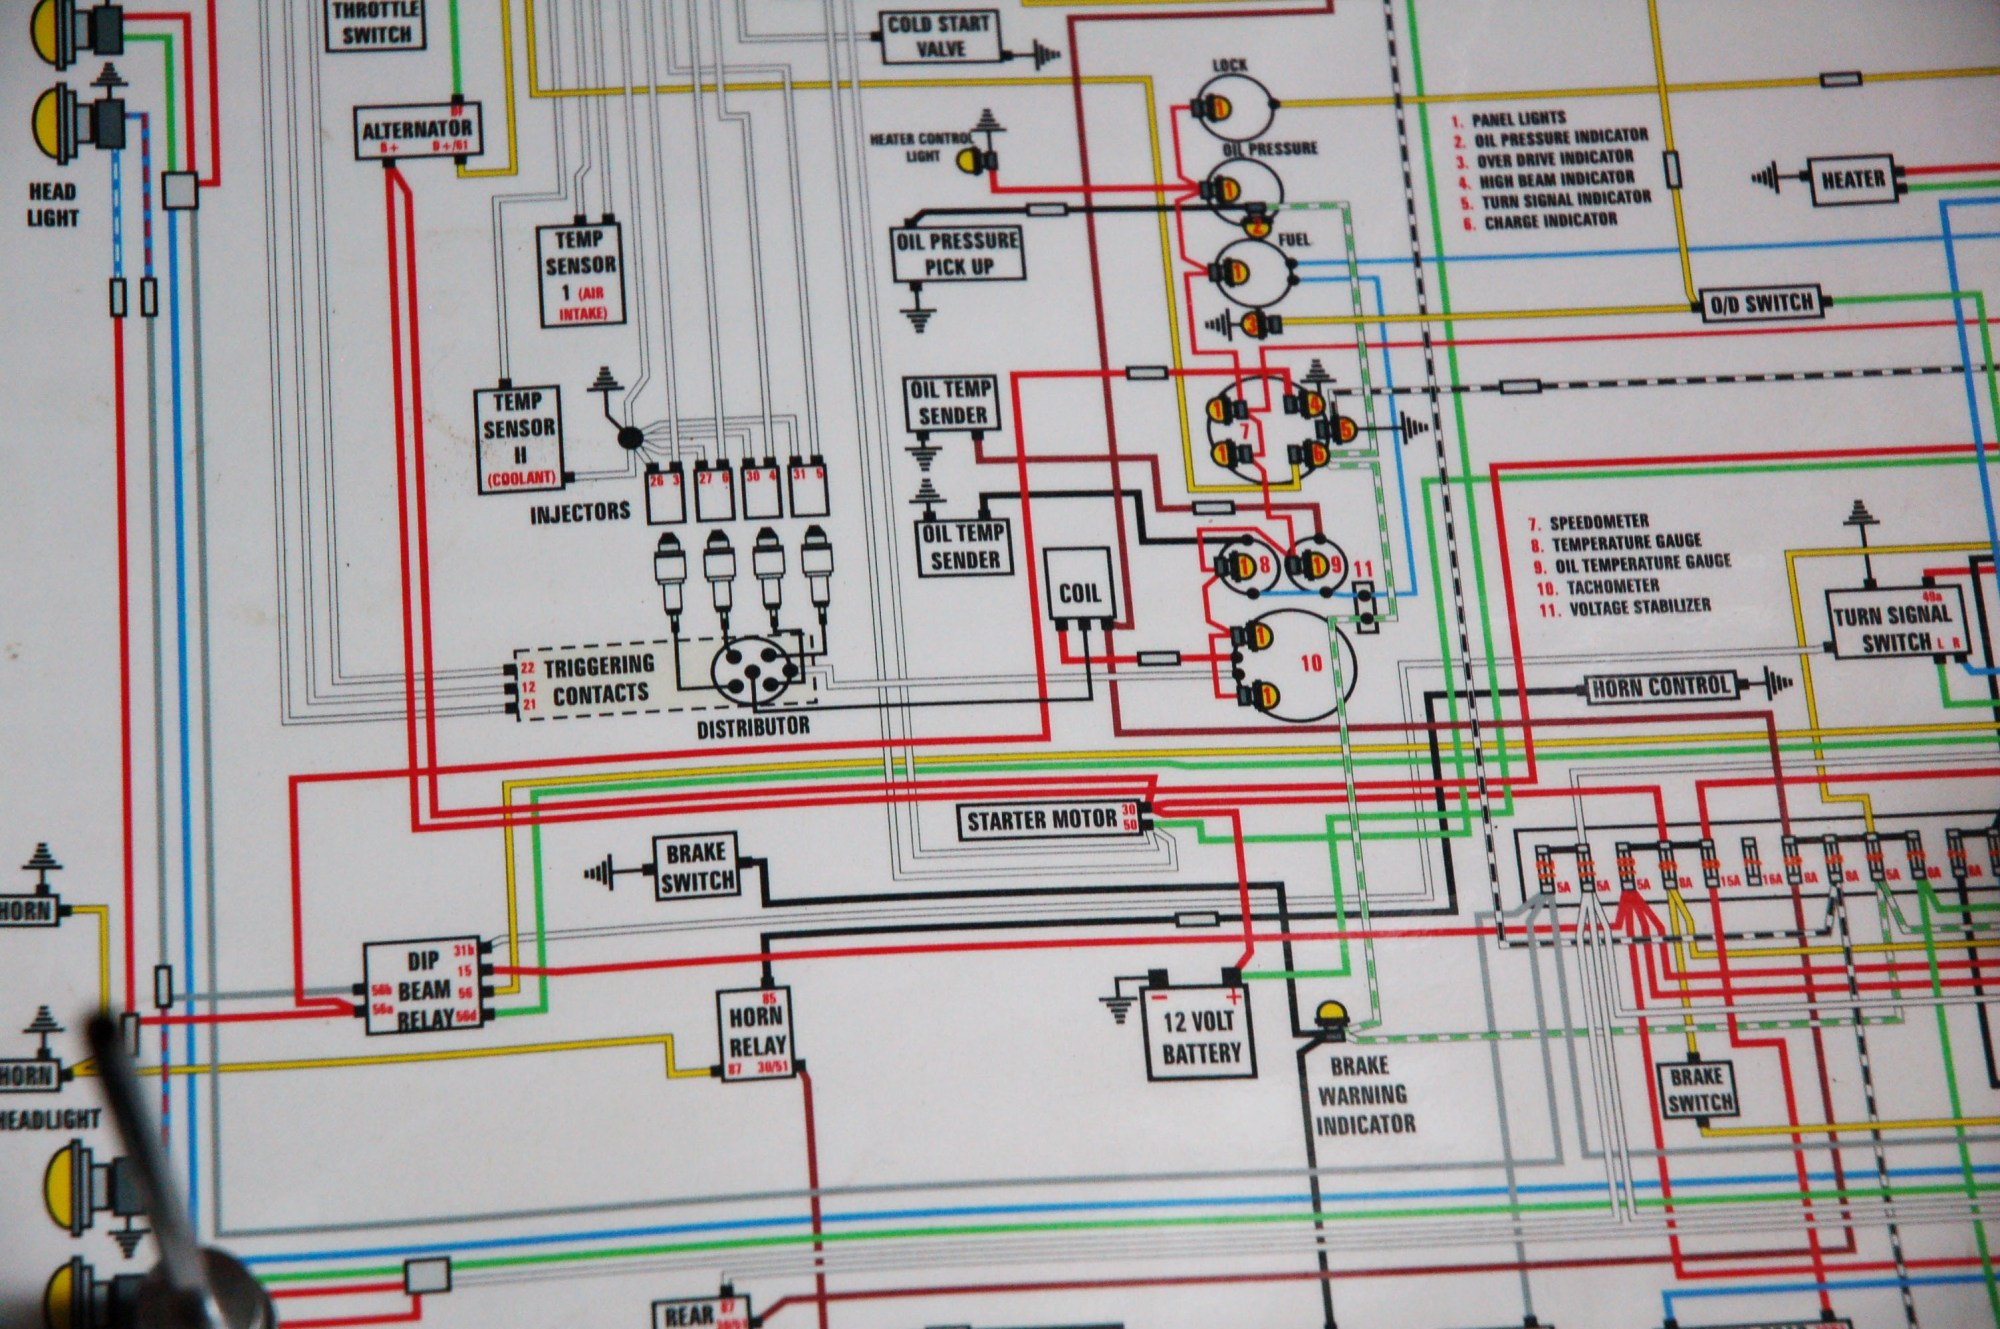 hight resolution of hight resolution of dictator management 60 2 wiring diagram in our garage installing a new wiring